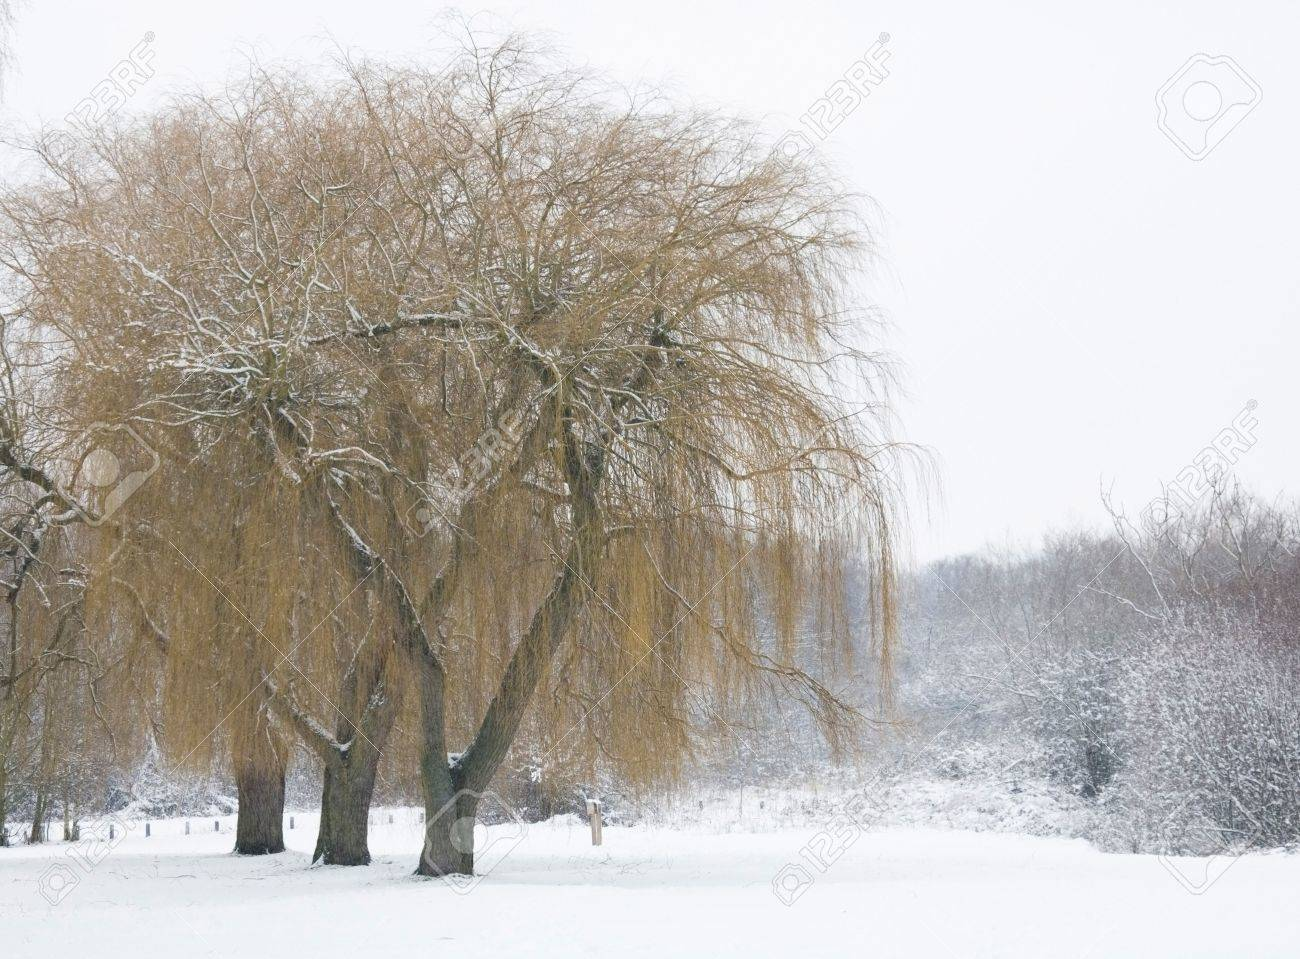 Winter scene with willow trees covered in snow Stock Photo - 4881702